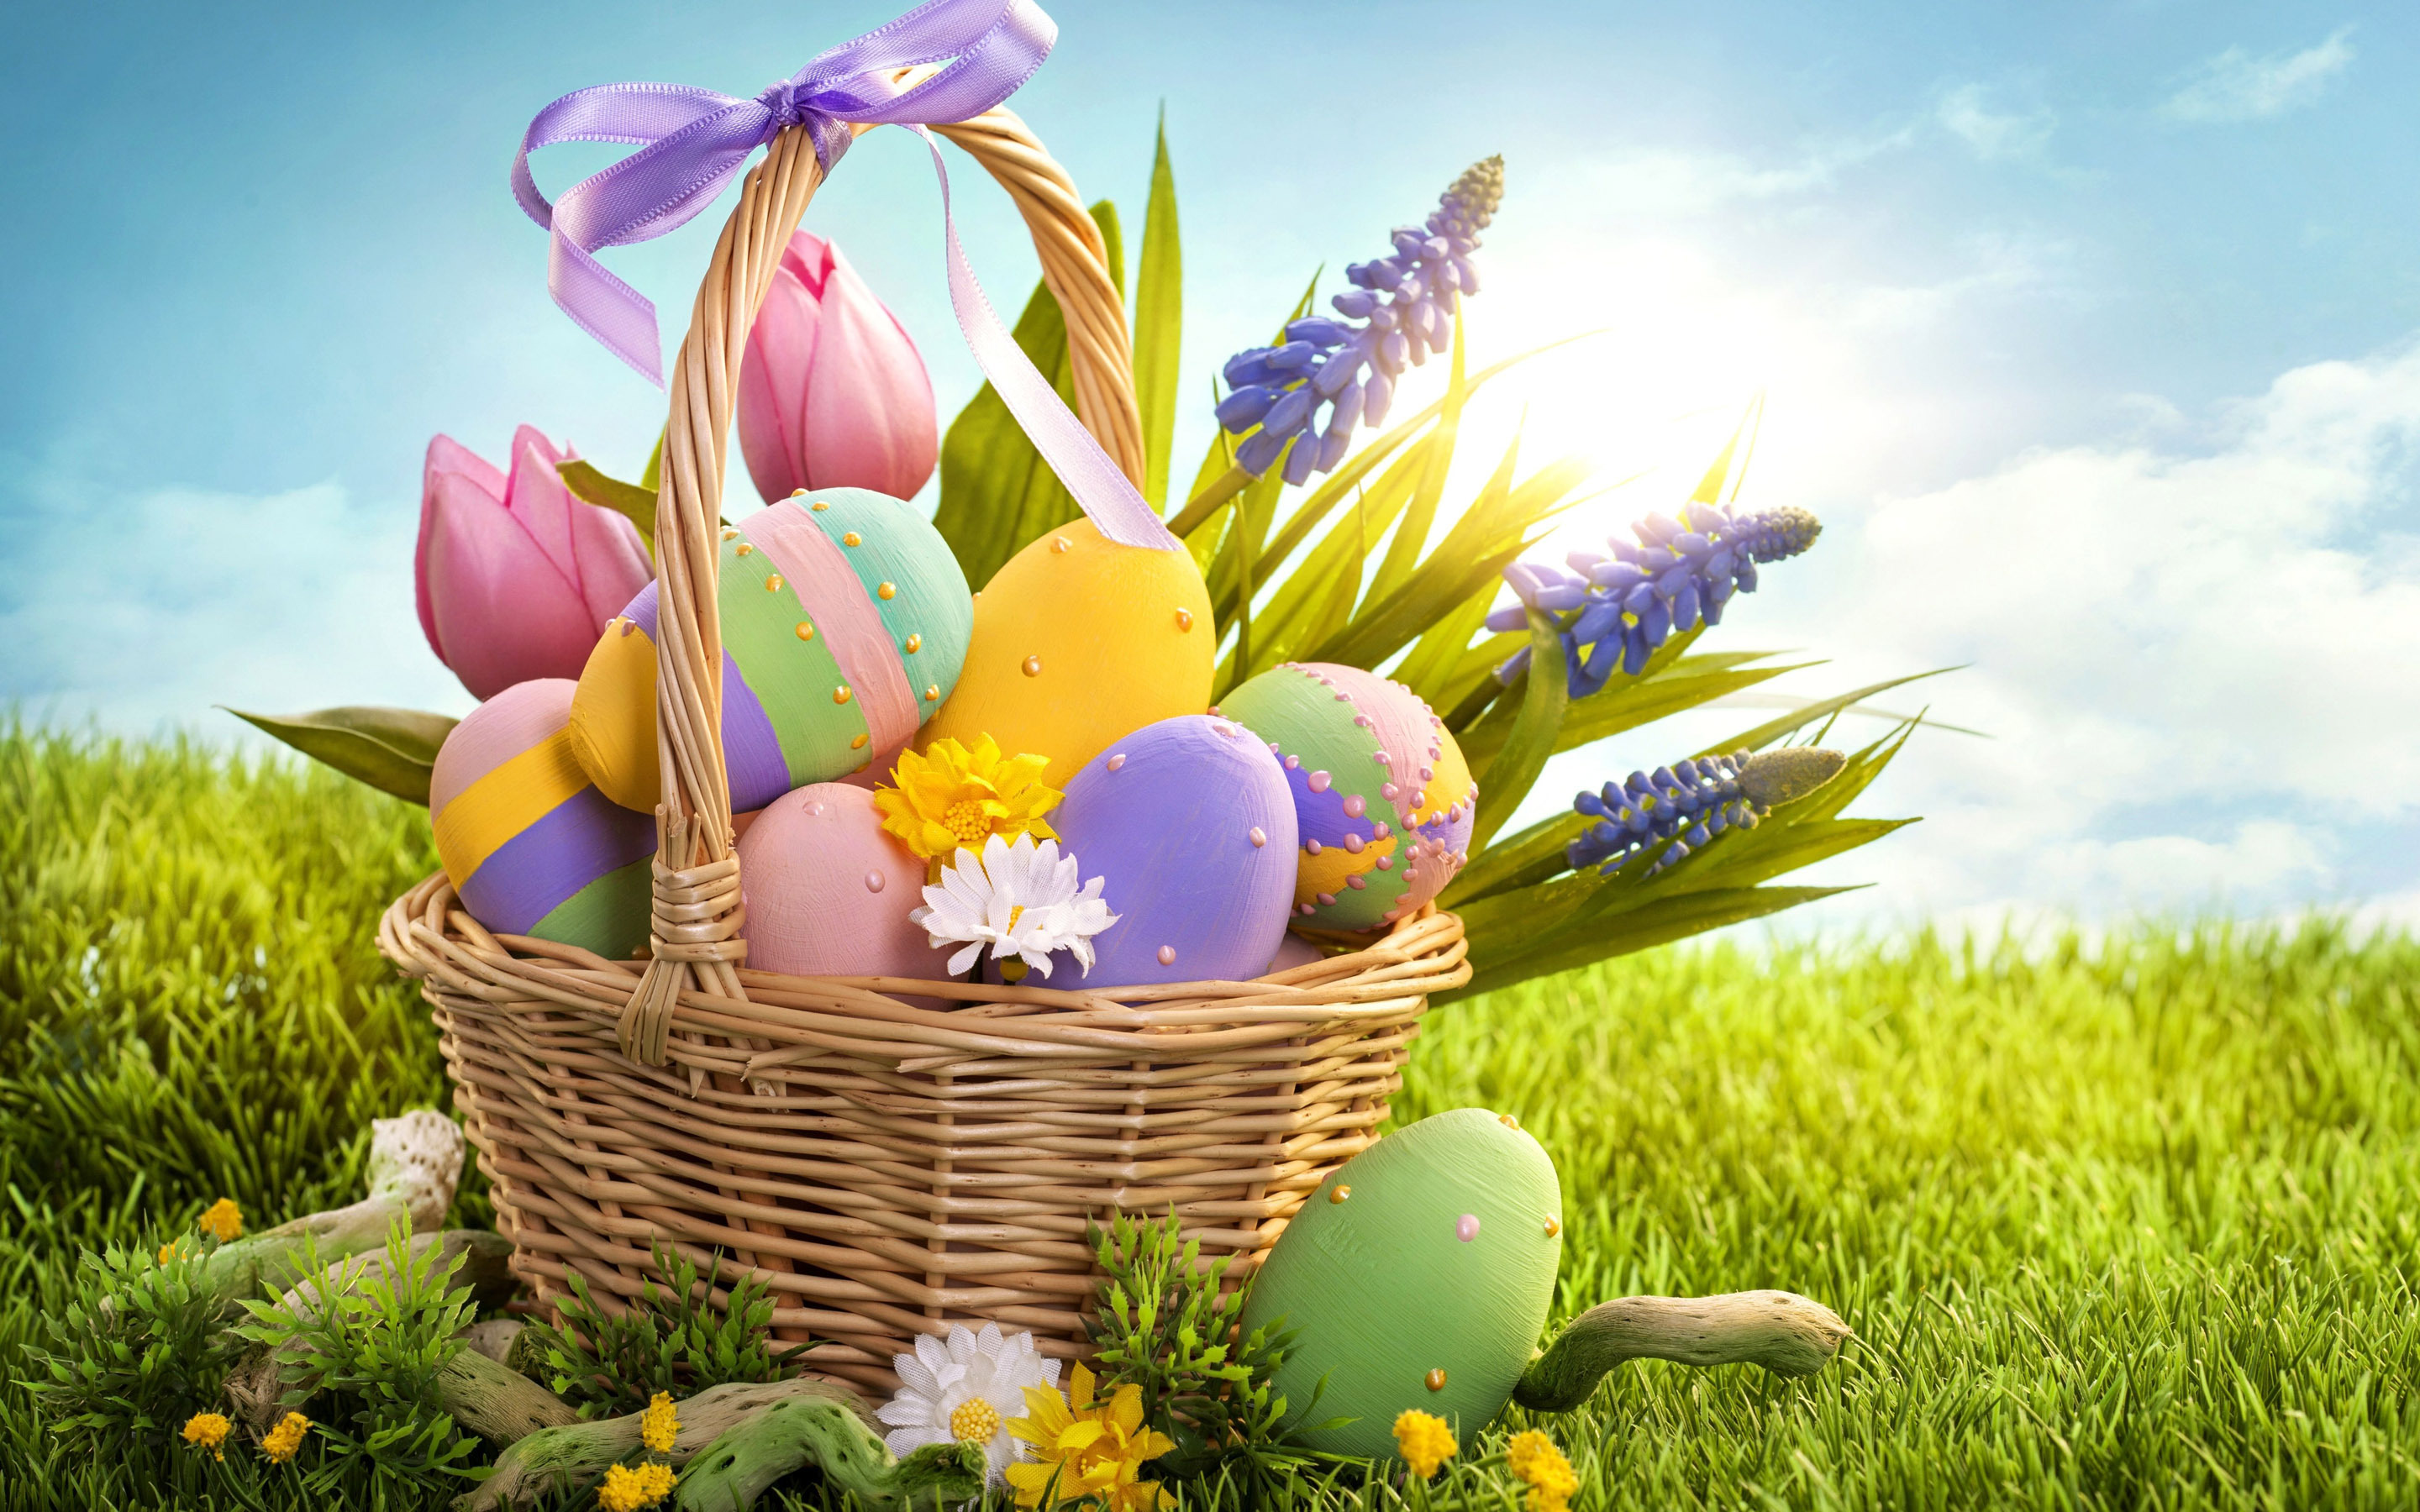 Easter Wallpaper HD 6873424 2880x1800